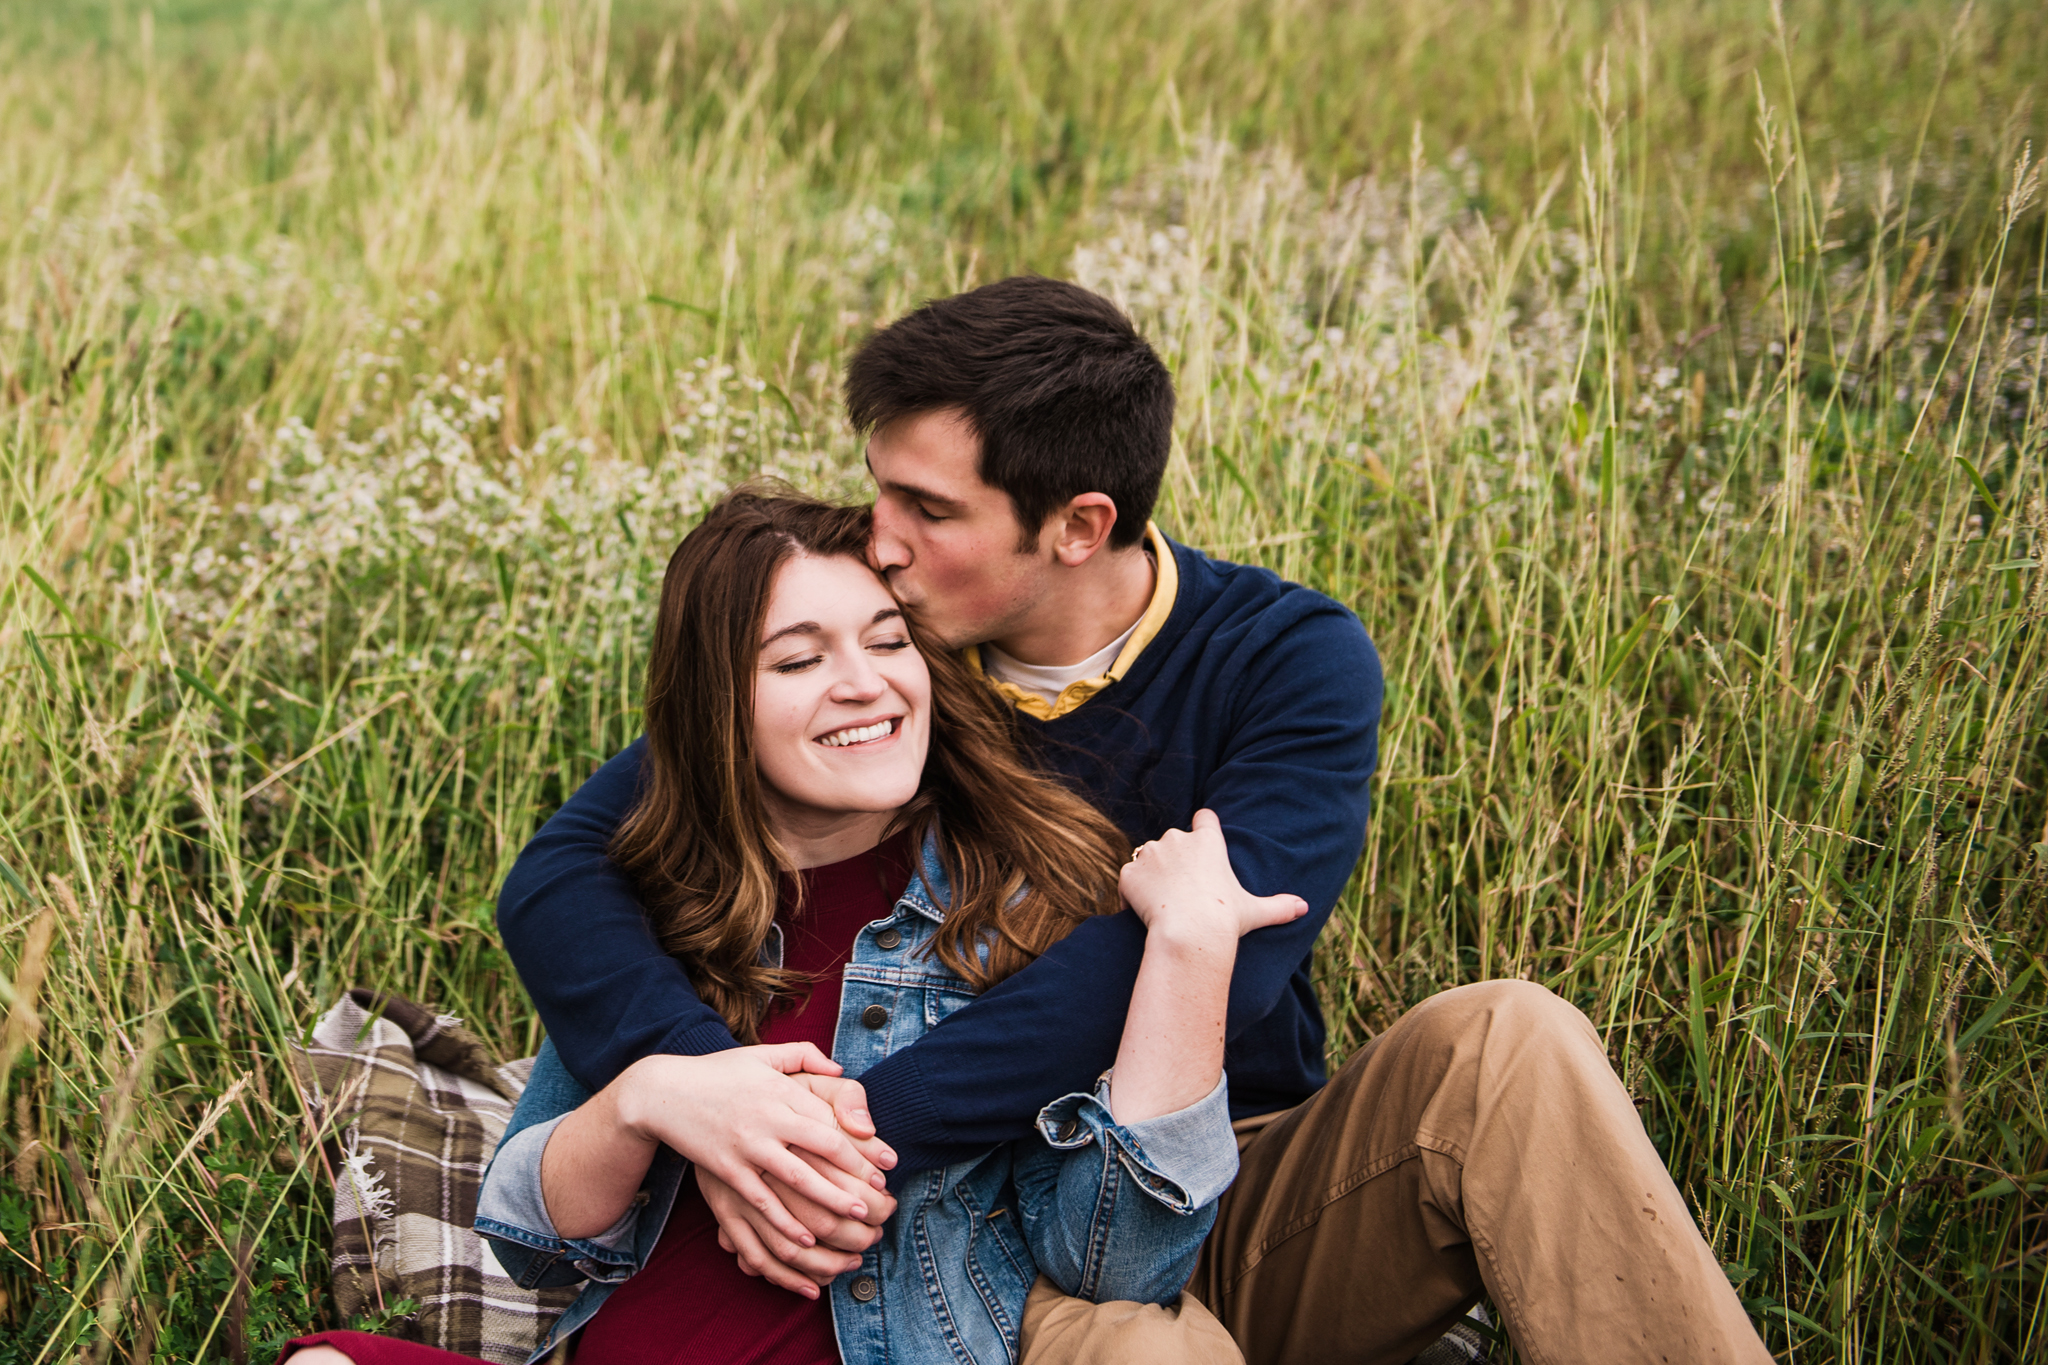 Becker_Farms_Buffalo_Engagement_Session_JILL_STUDIO_Rochester_NY_Photographer_DSC_4780.jpg